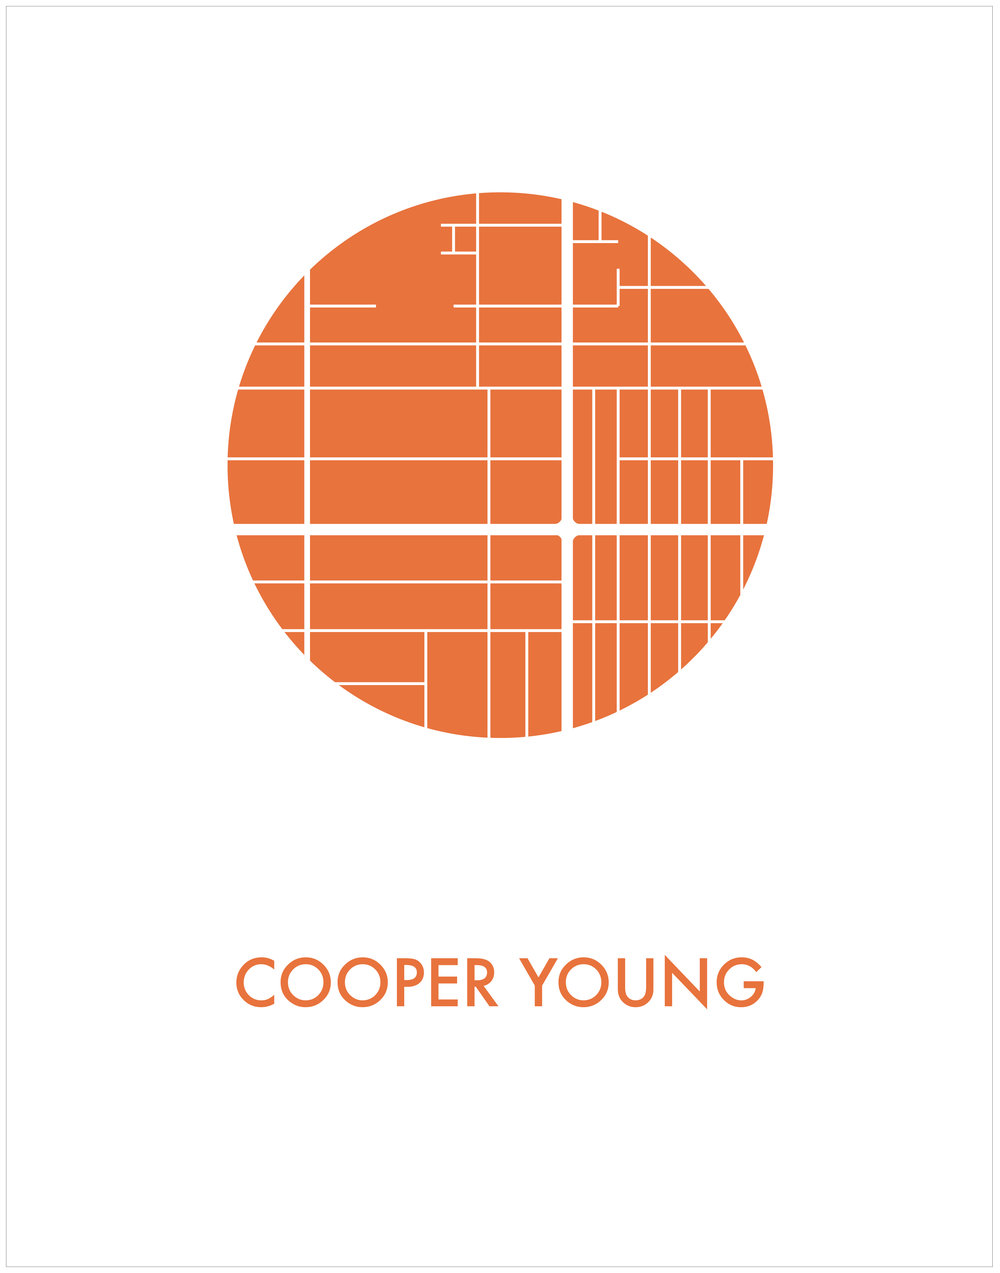 cooper young map.jpg